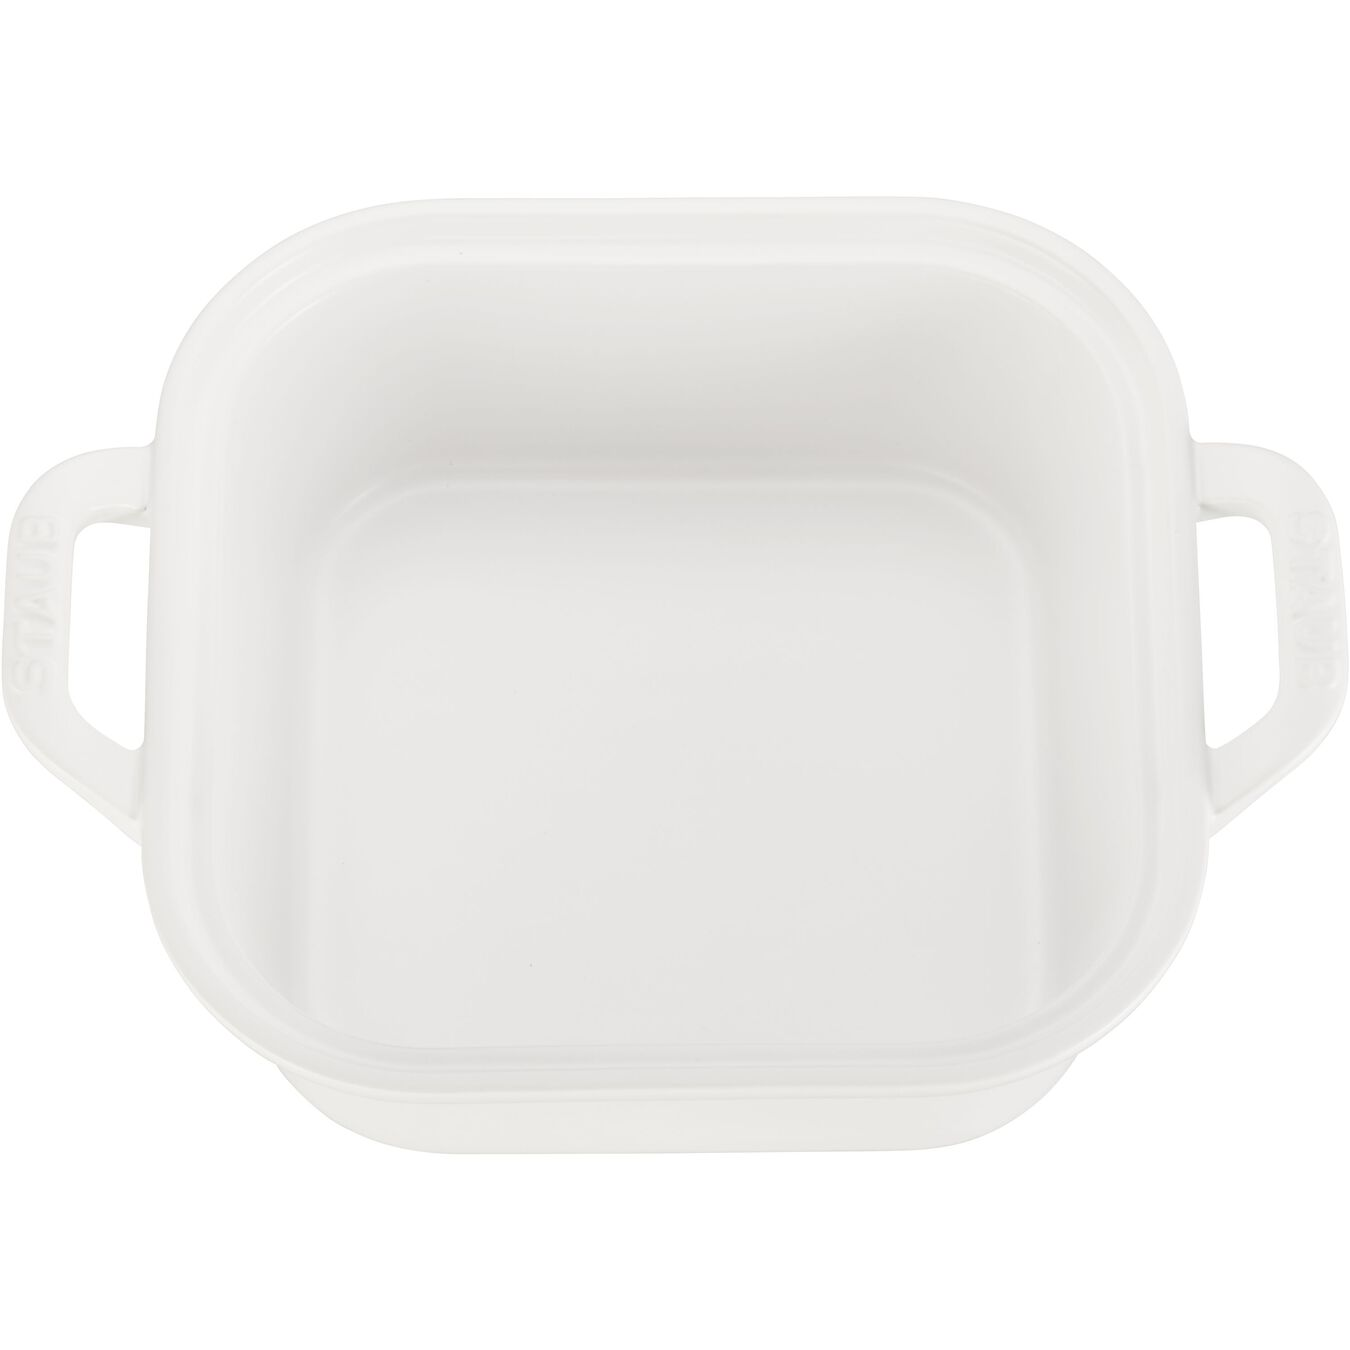 9-inch X 9-inch Square Covered Baking Dish - Matte White,,large 4